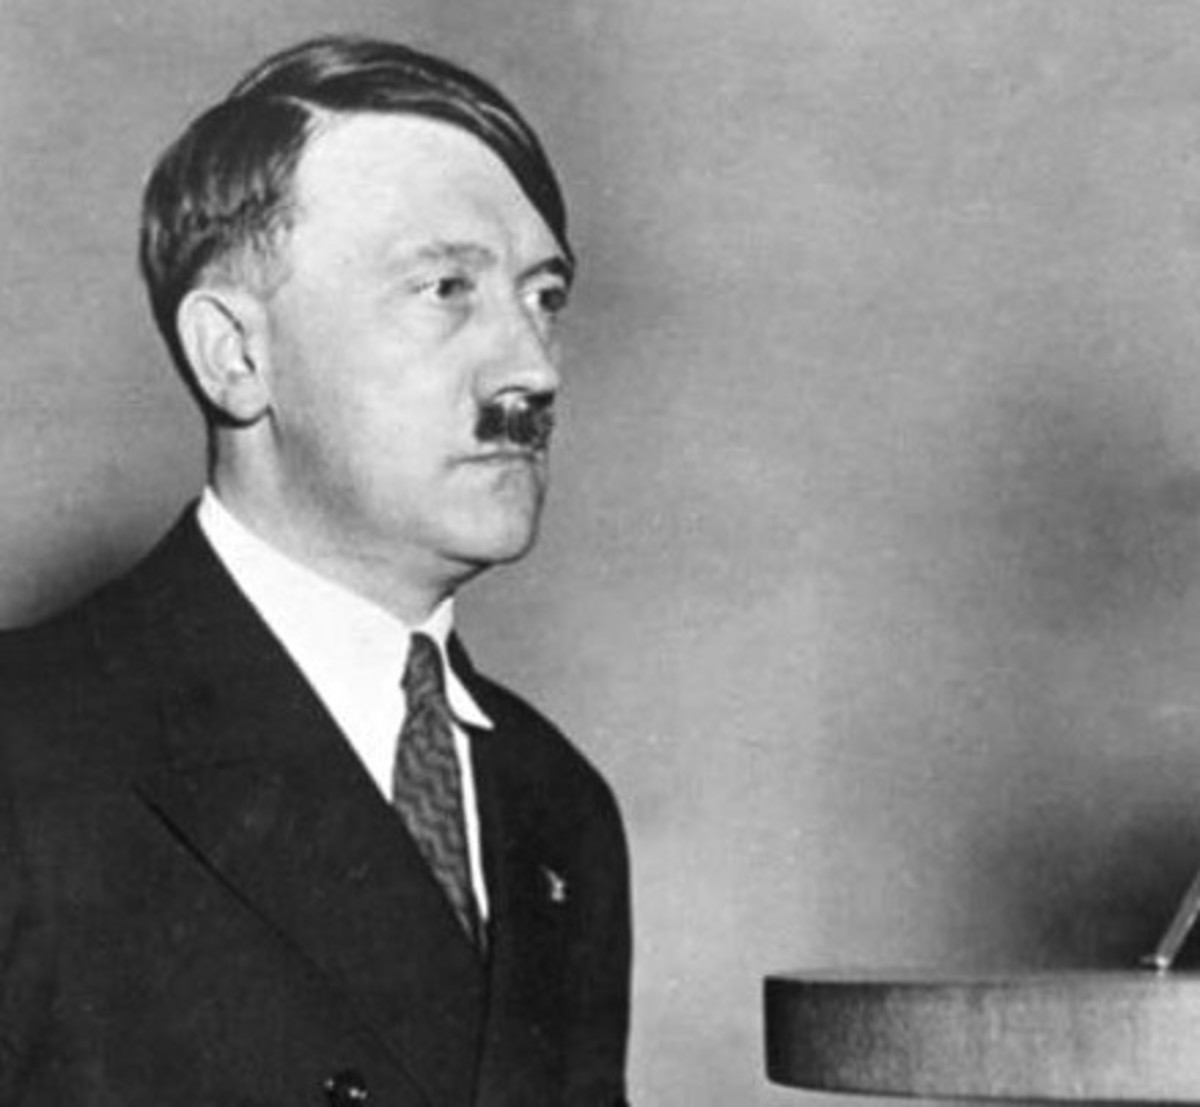 Adolf Hitler about to give a speech in 1933.